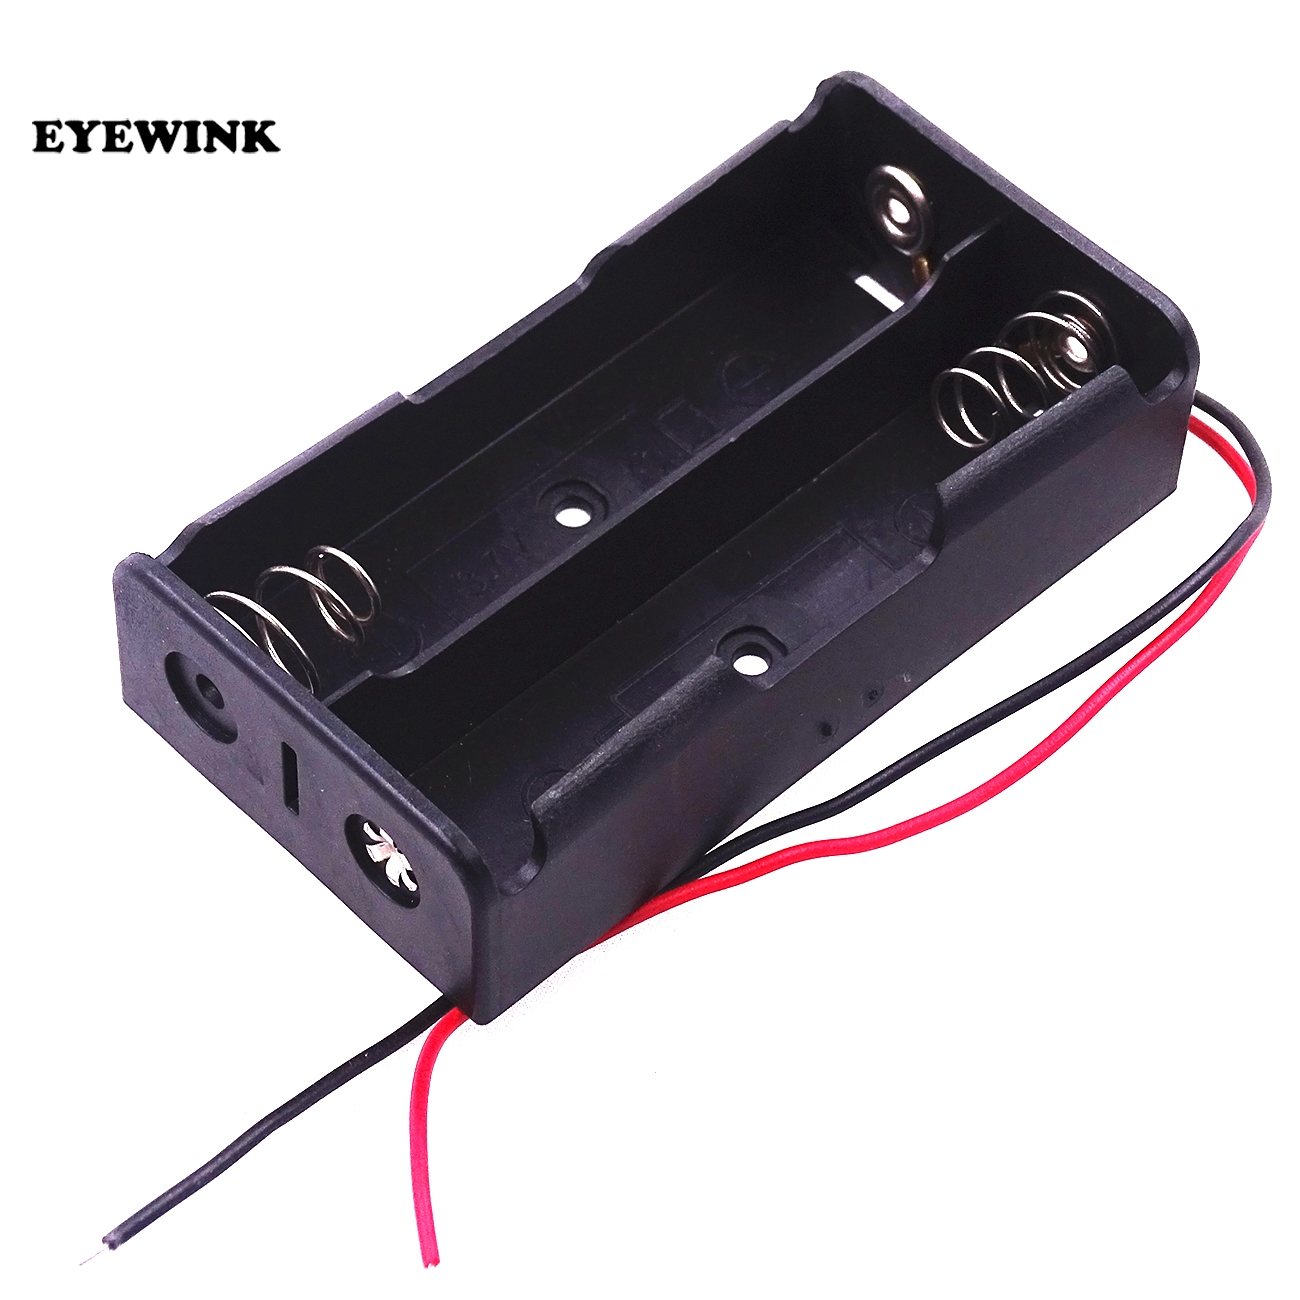 Best 2 X 1 Wires List And Get Free Shipping Wzdxfmvx 85